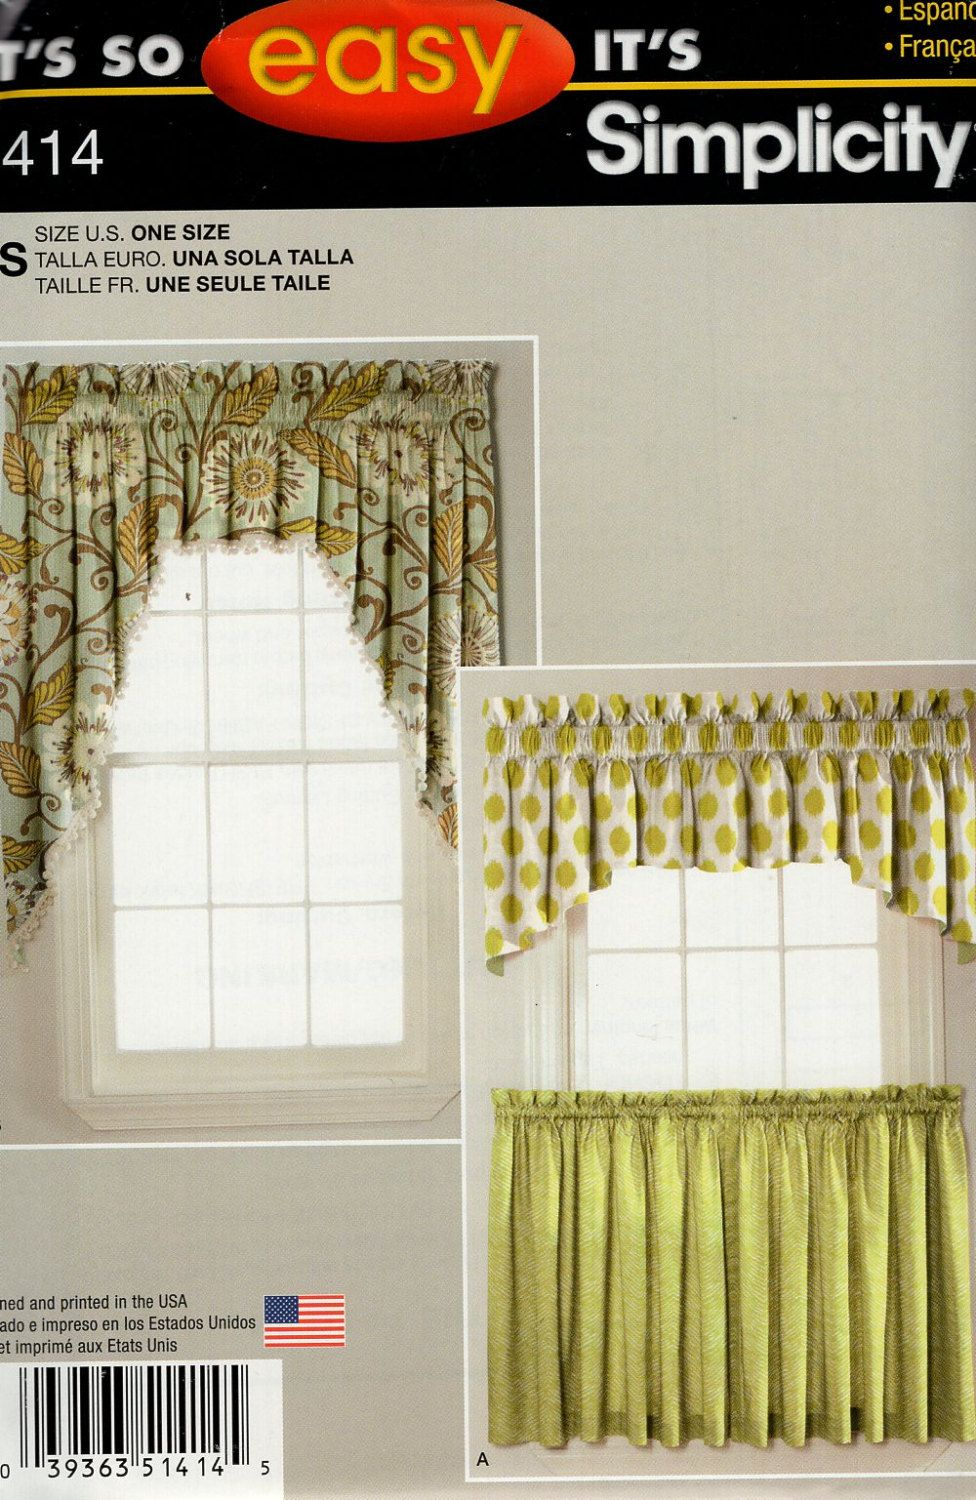 Simplicity Window Treatments Sewing Pattern 1414 Free Us